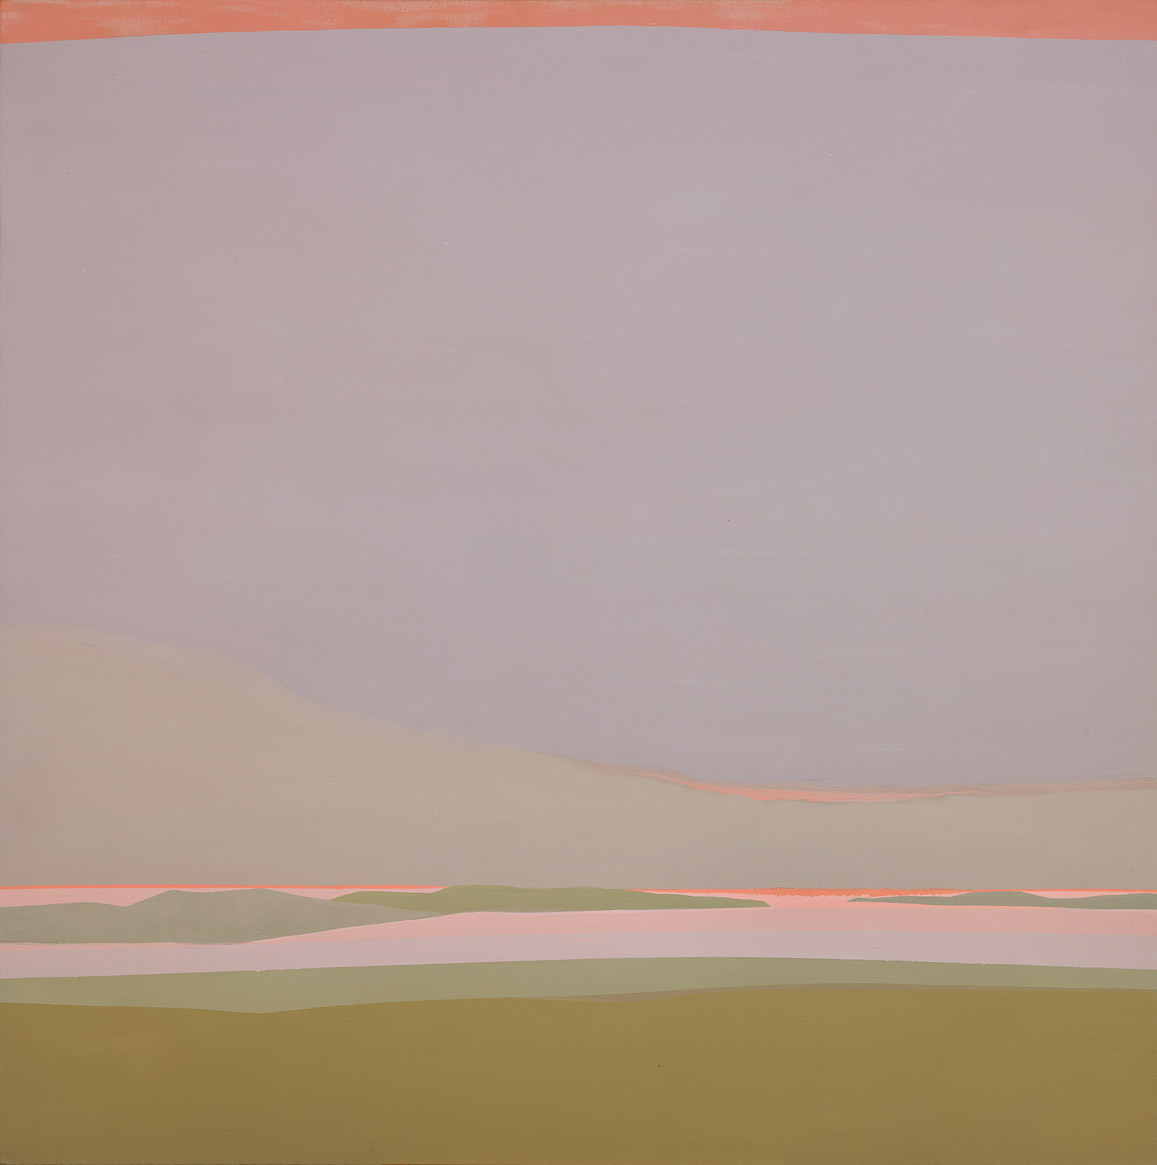 Islands , 1986  acrylic on canvas 50 x 50 inches; 127 x 127 centimeters